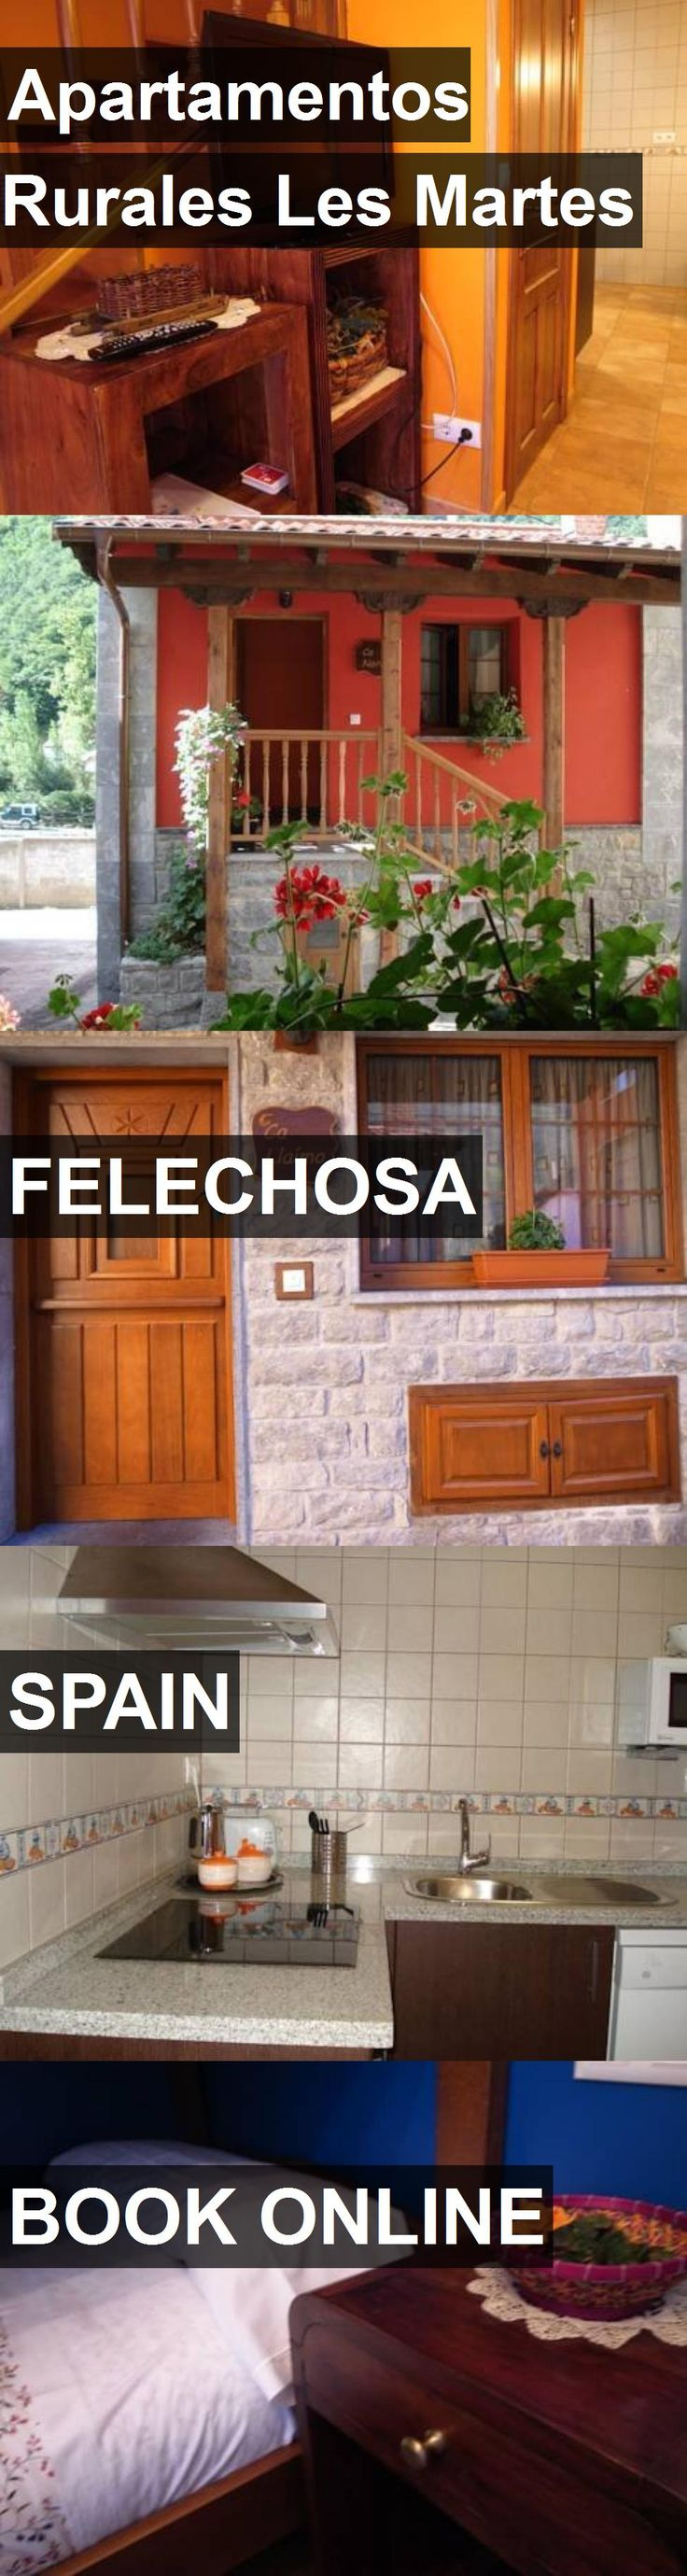 Hotel Apartamentos Rurales Les Martes in Felechosa, Spain. For more information, photos, reviews and best prices please follow the link. #Spain #Felechosa #travel #vacation #hotel